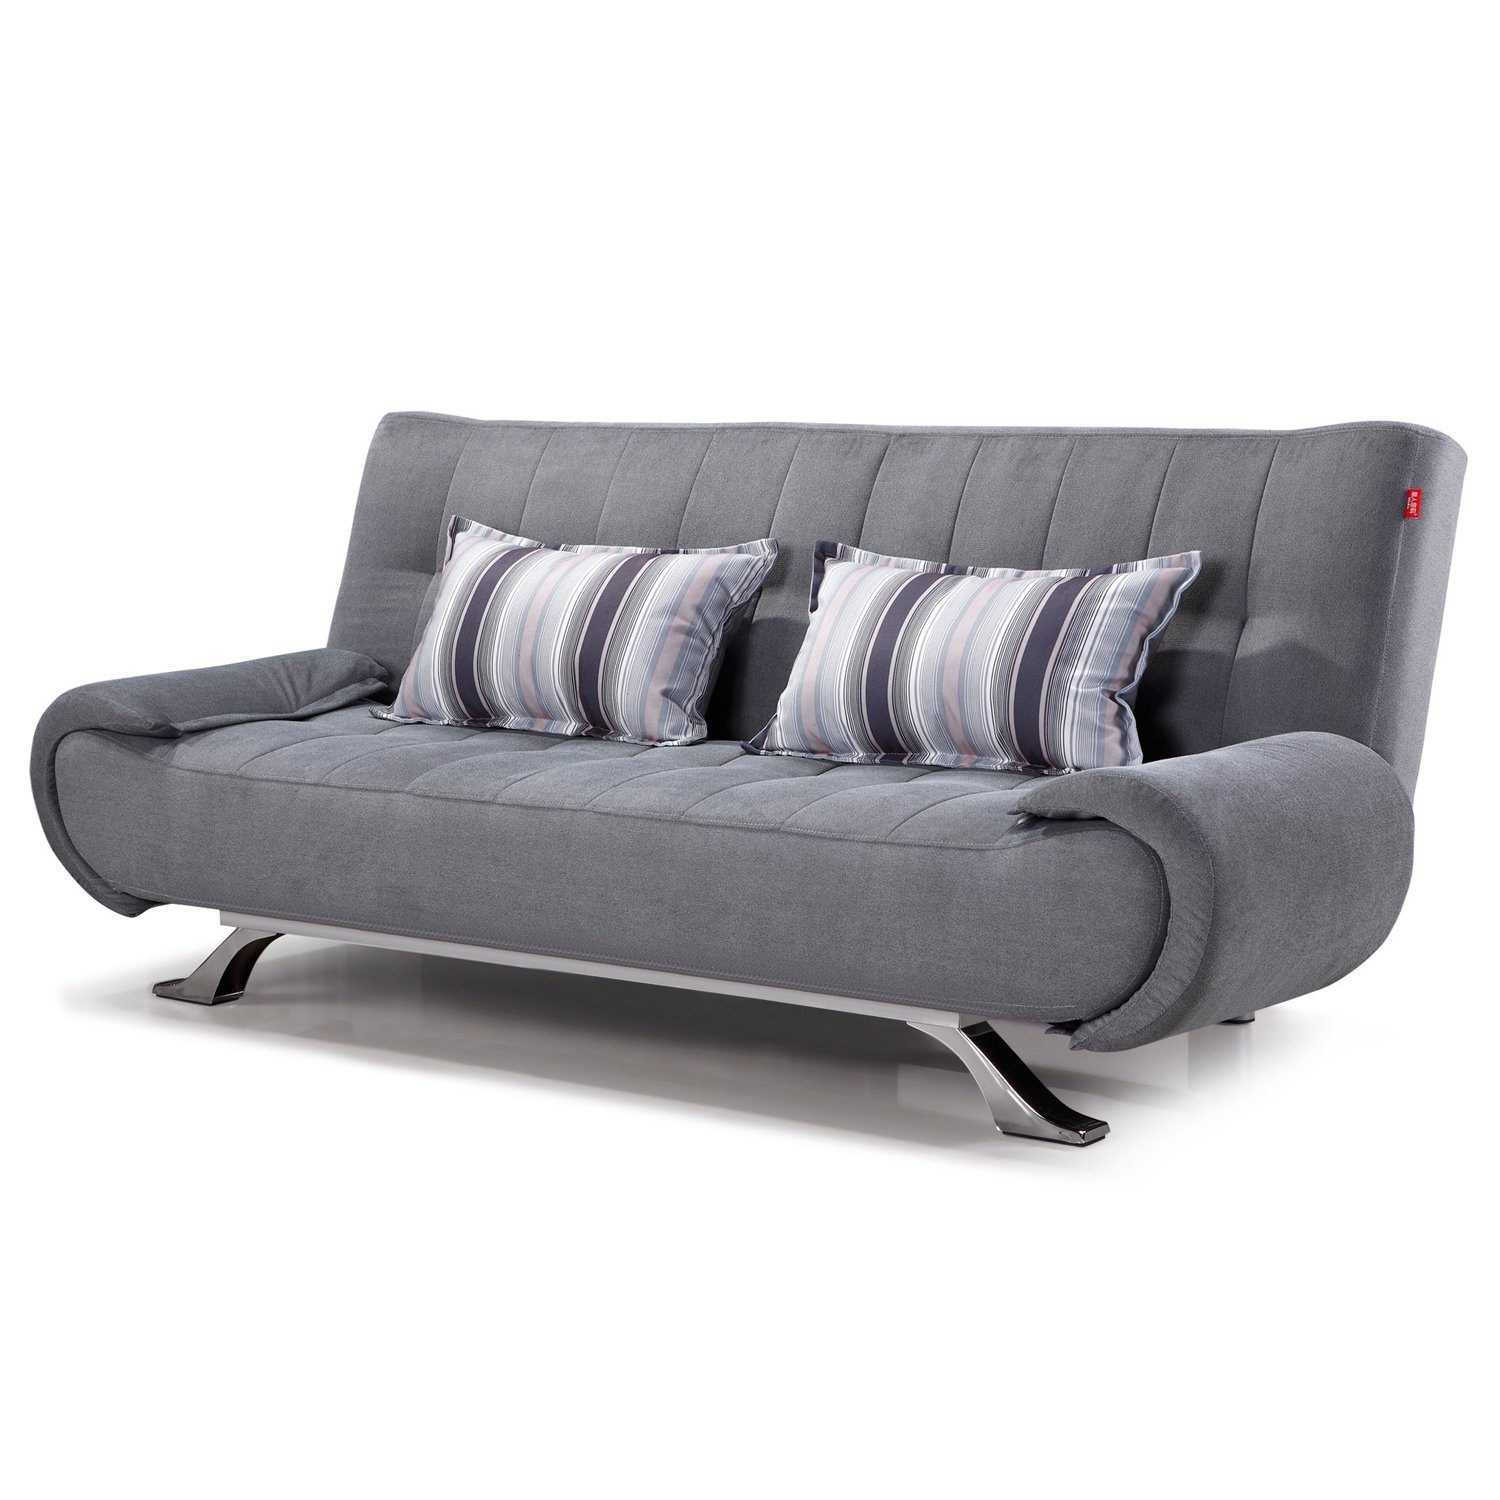 China Simple Design Sofa Cum Bed Furniture - China Folding Sofa Bed Modern Sofa Bed